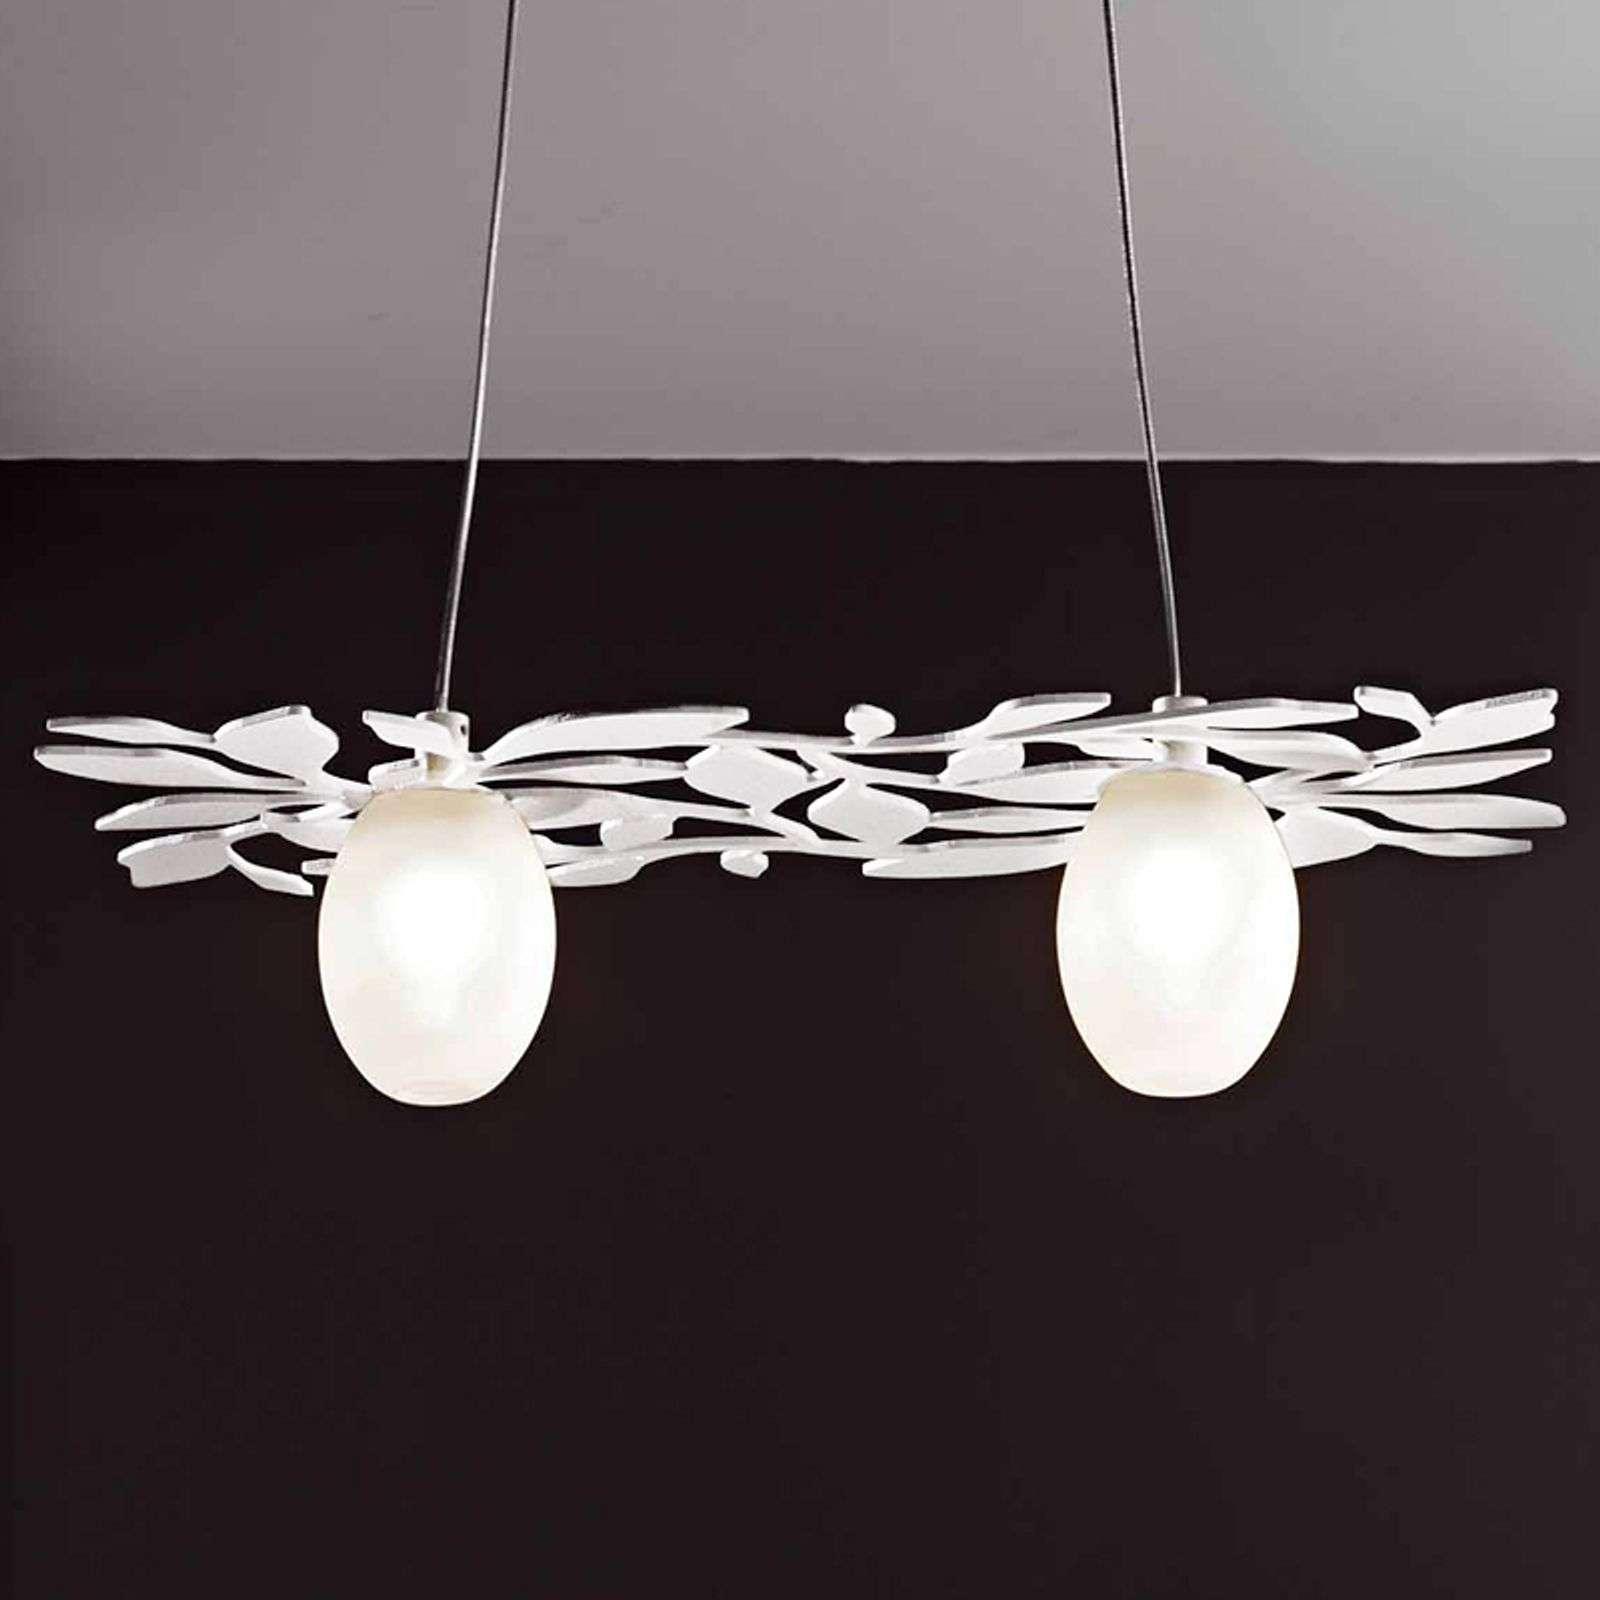 Belle suspension Arbos à 2 lampes blanc